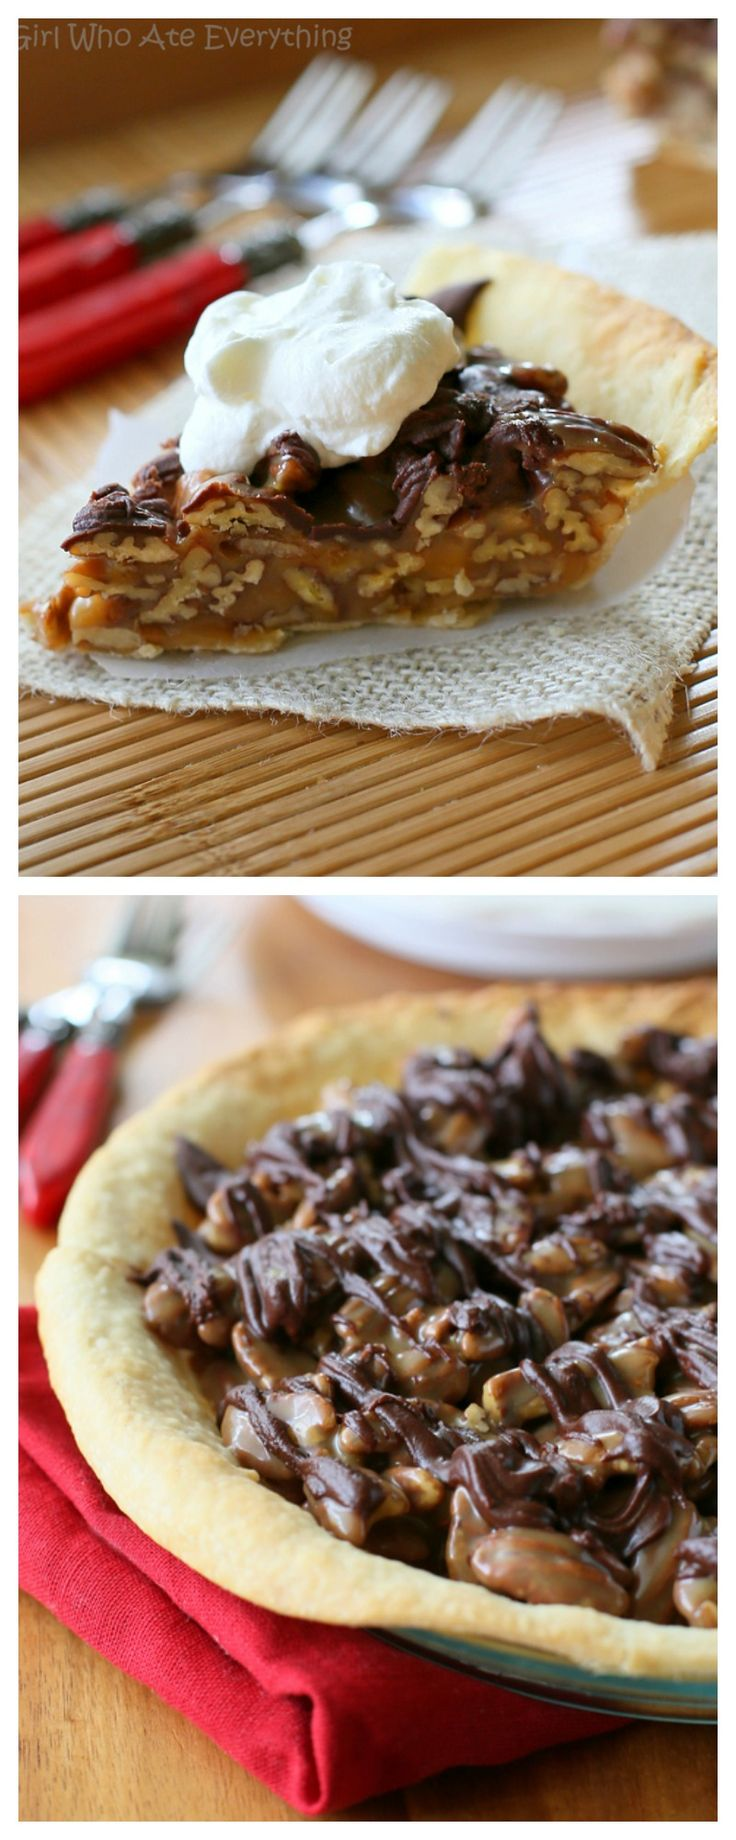 Praline Turtle Pie - Layers of caramel, pecans, and chocolate. So easy and decadent. the-girl-who-ate-everything.com